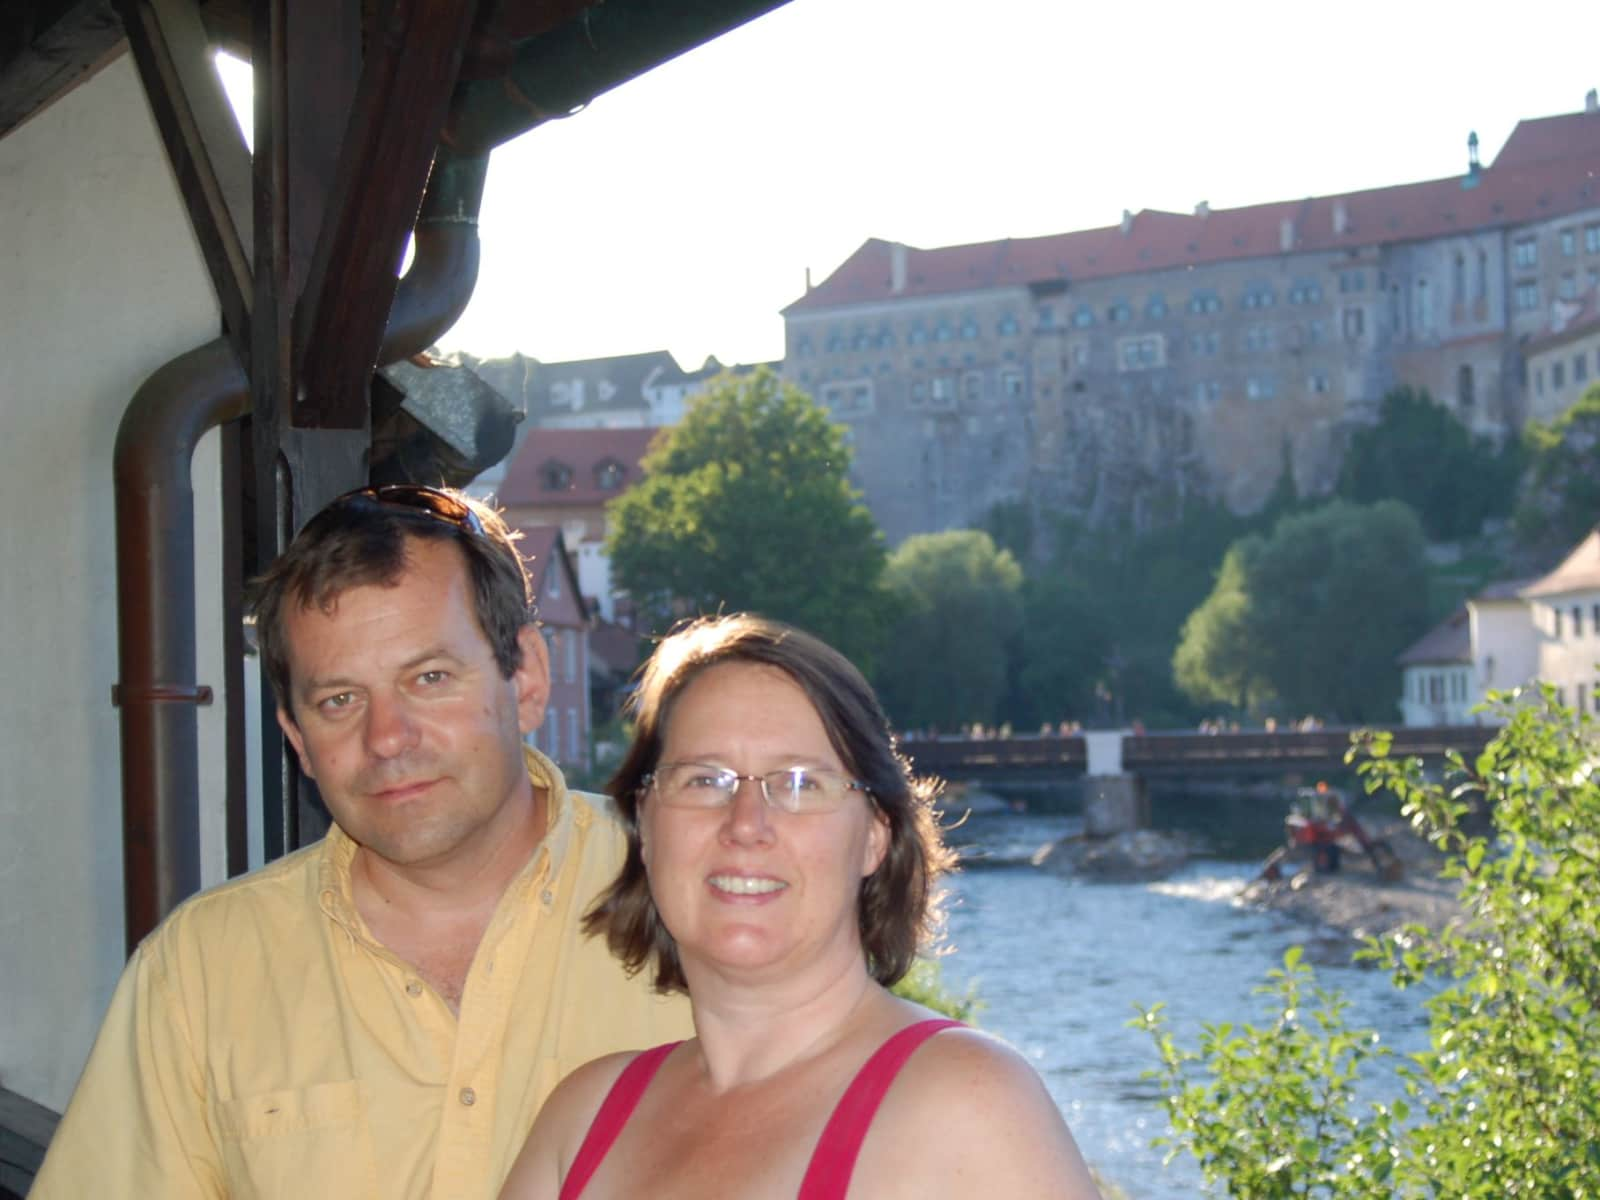 Tania and ron & Ron from Victoria, British Columbia, Canada